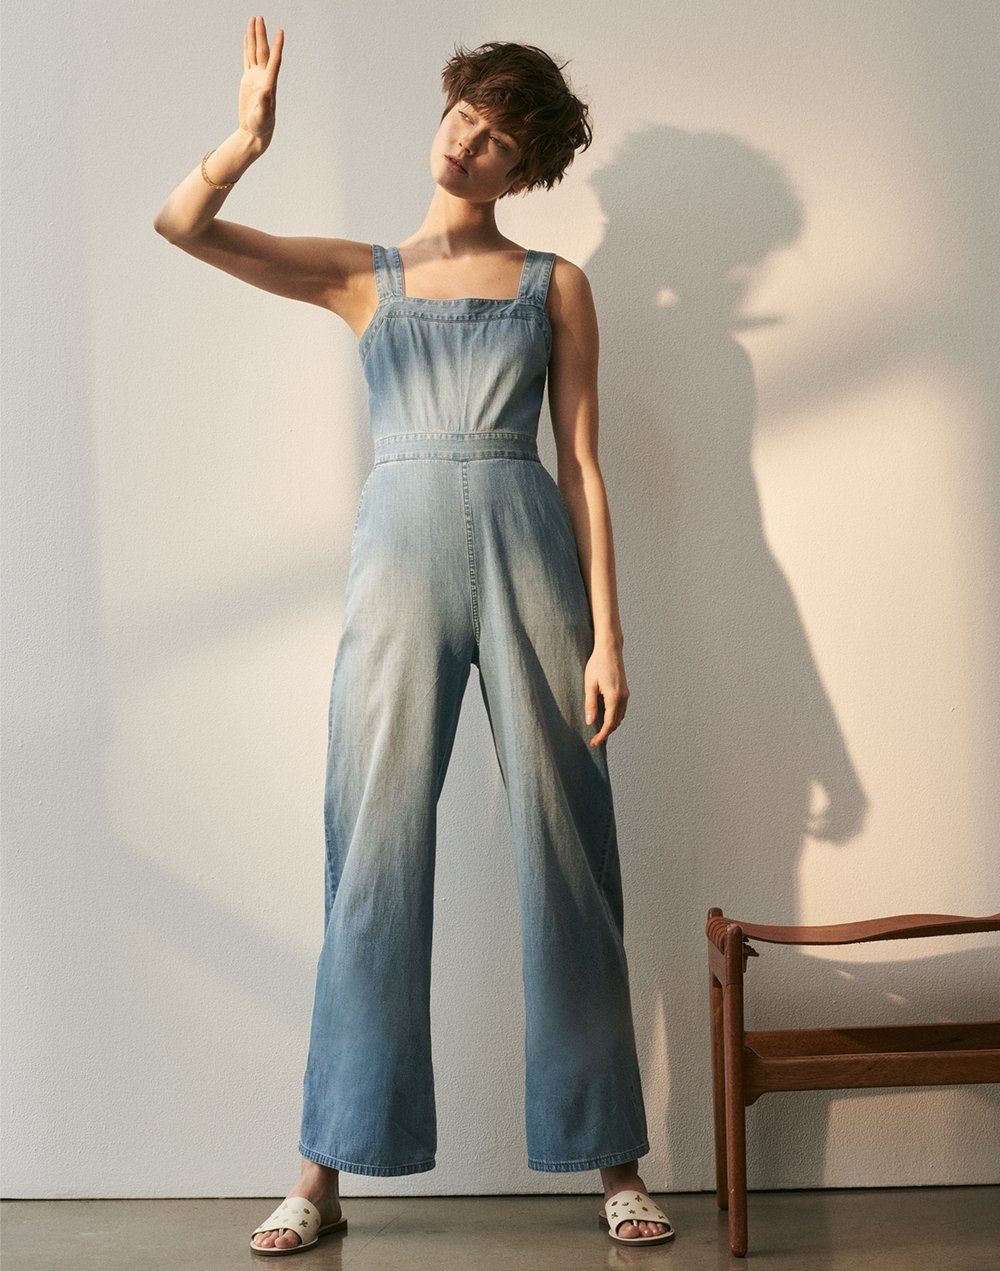 Madewell Apron Bow Back Jumpsuit Worn With The Boardwalk Post Slide